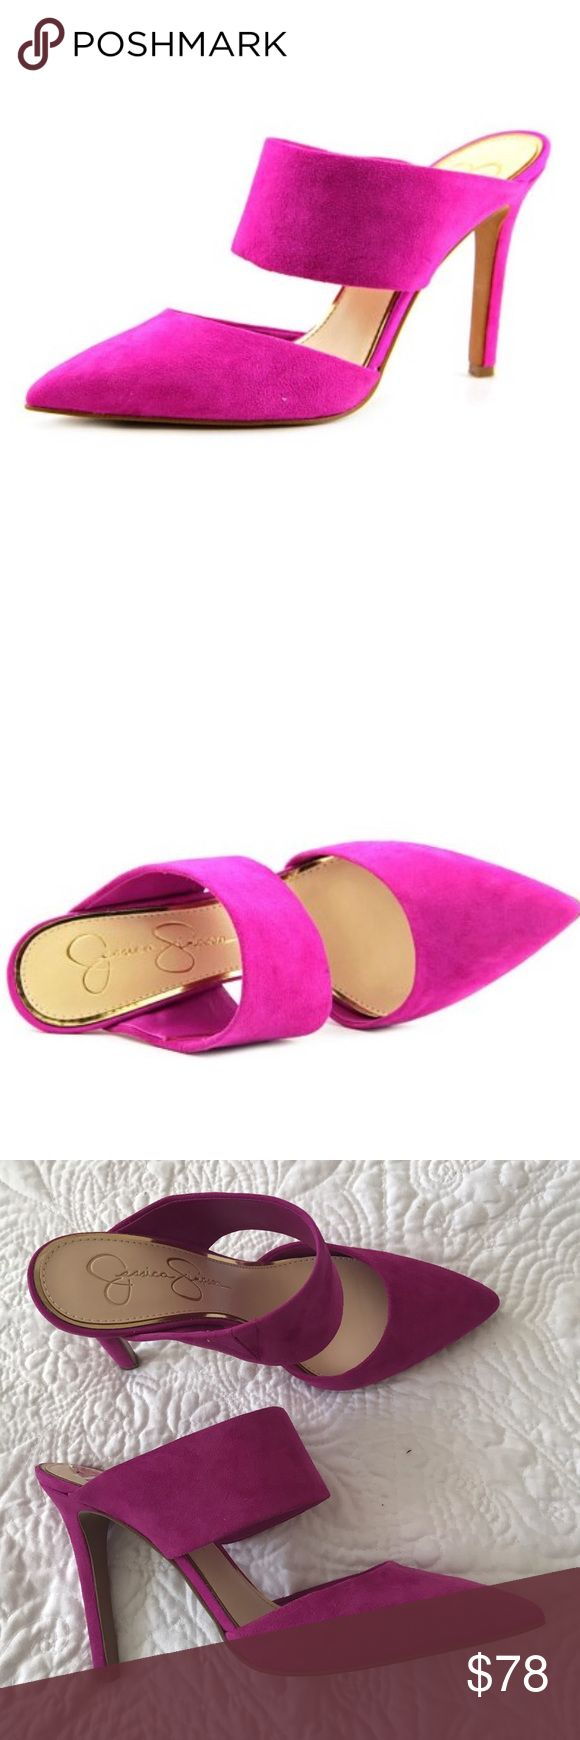 """Jessica Simpson Chandra mules Brand new with box, suede in hot pink color. Heel height 4"""". Jessica Simpson Shoes"""